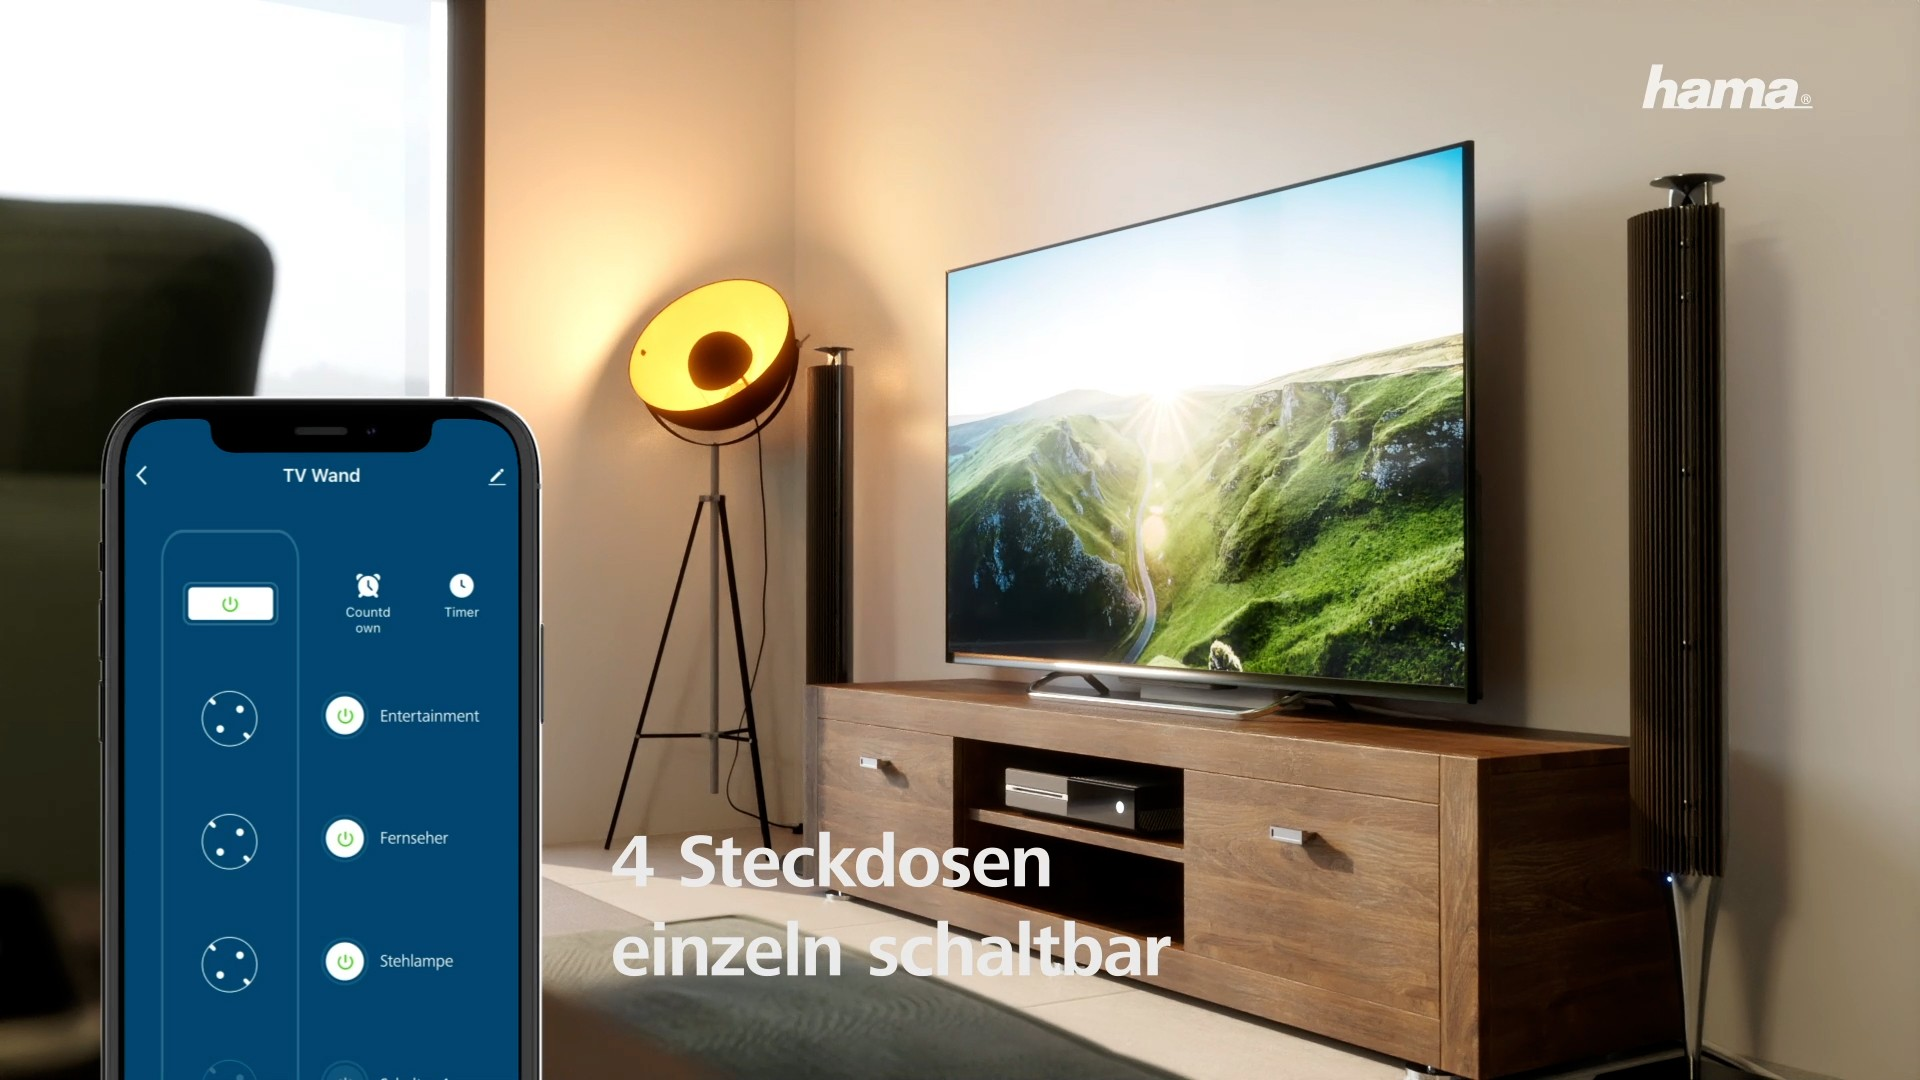 Motion Design Agentur hama- Smart Steckdose